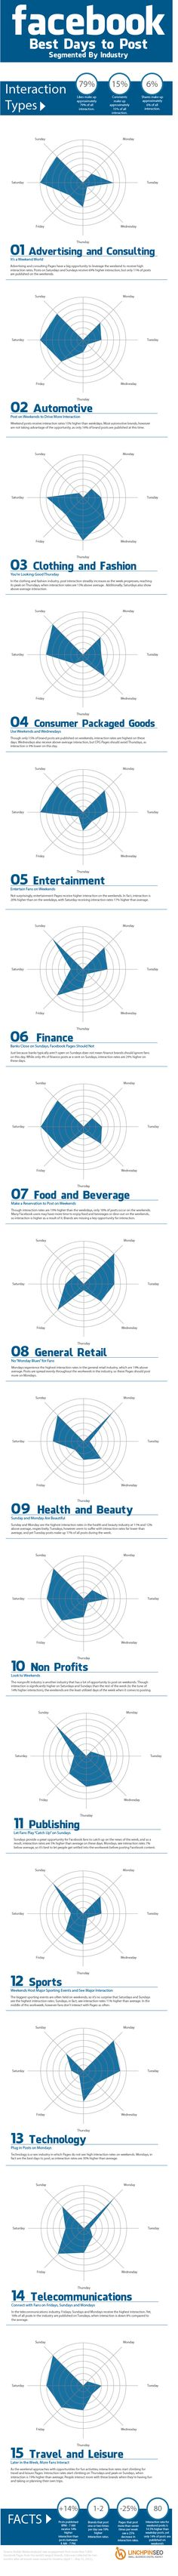 Facebook: Best Days to Post Segmented by Industry[INFOGRAPHIC]